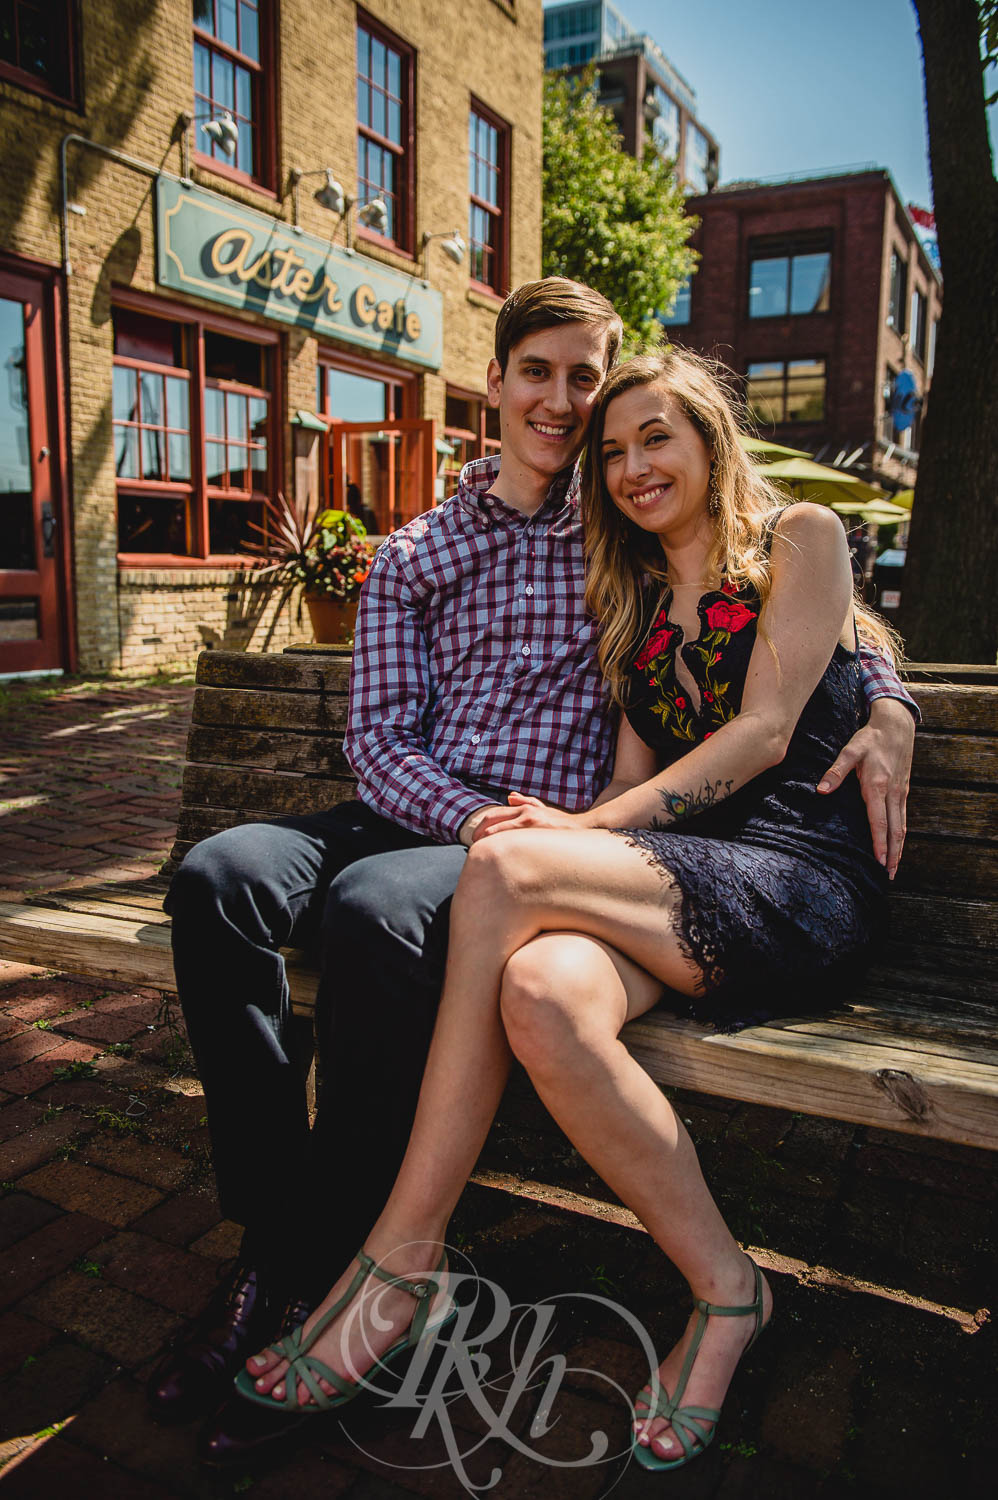 Tiffany & Troy - Minnesota Engagement Photography - St. Anthony Main - RKH Images  (7 of 12).jpg